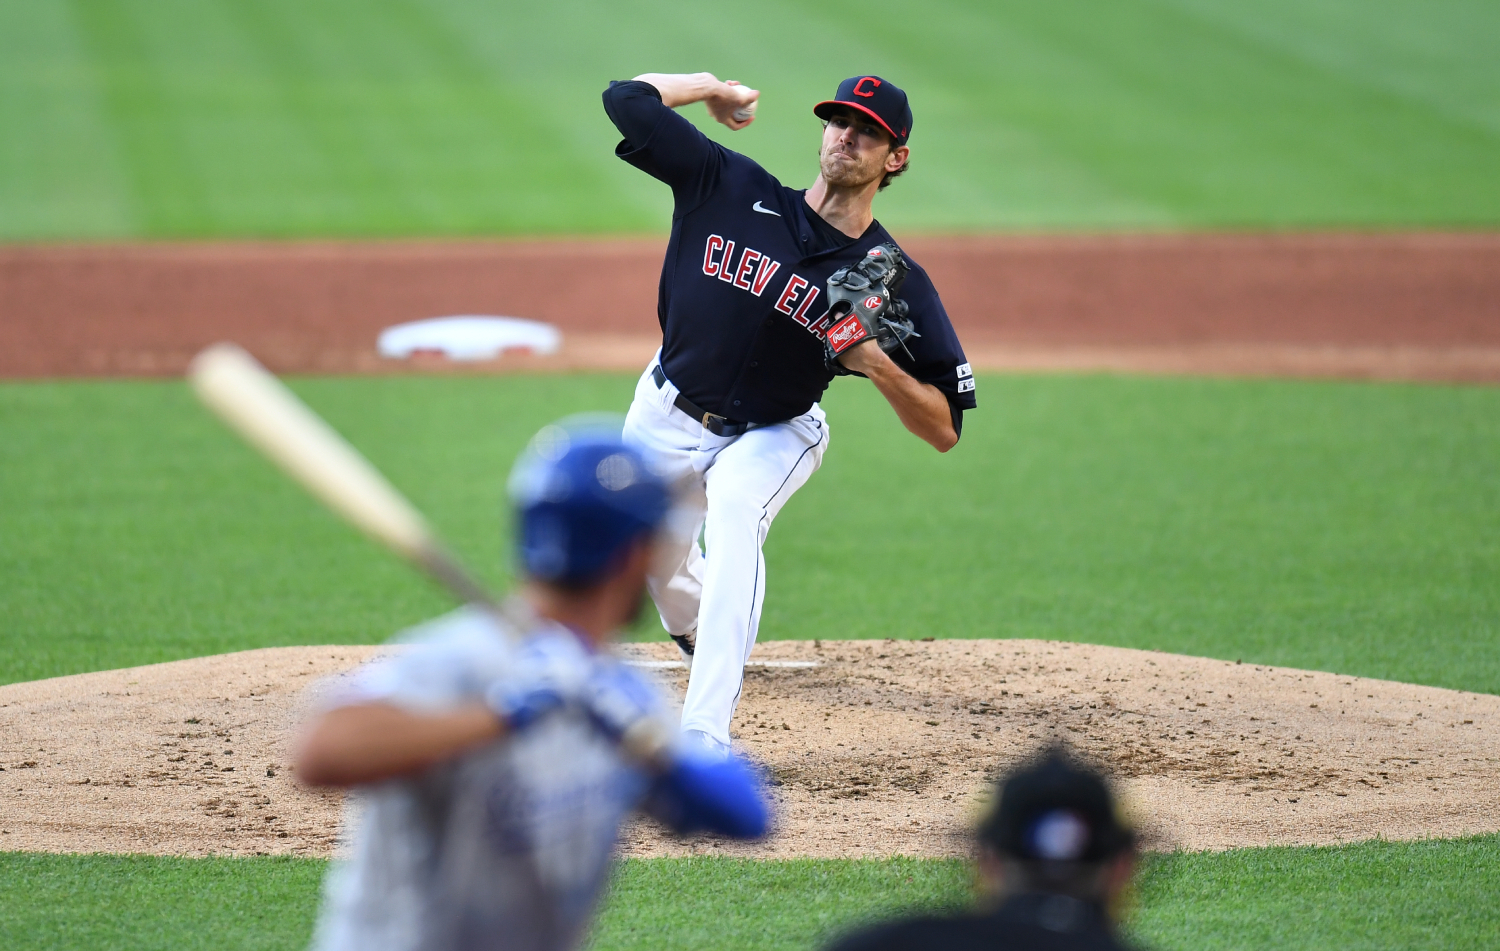 Shane Bieber, No Relation to Justin, Is Quickly Making a Name for Himself